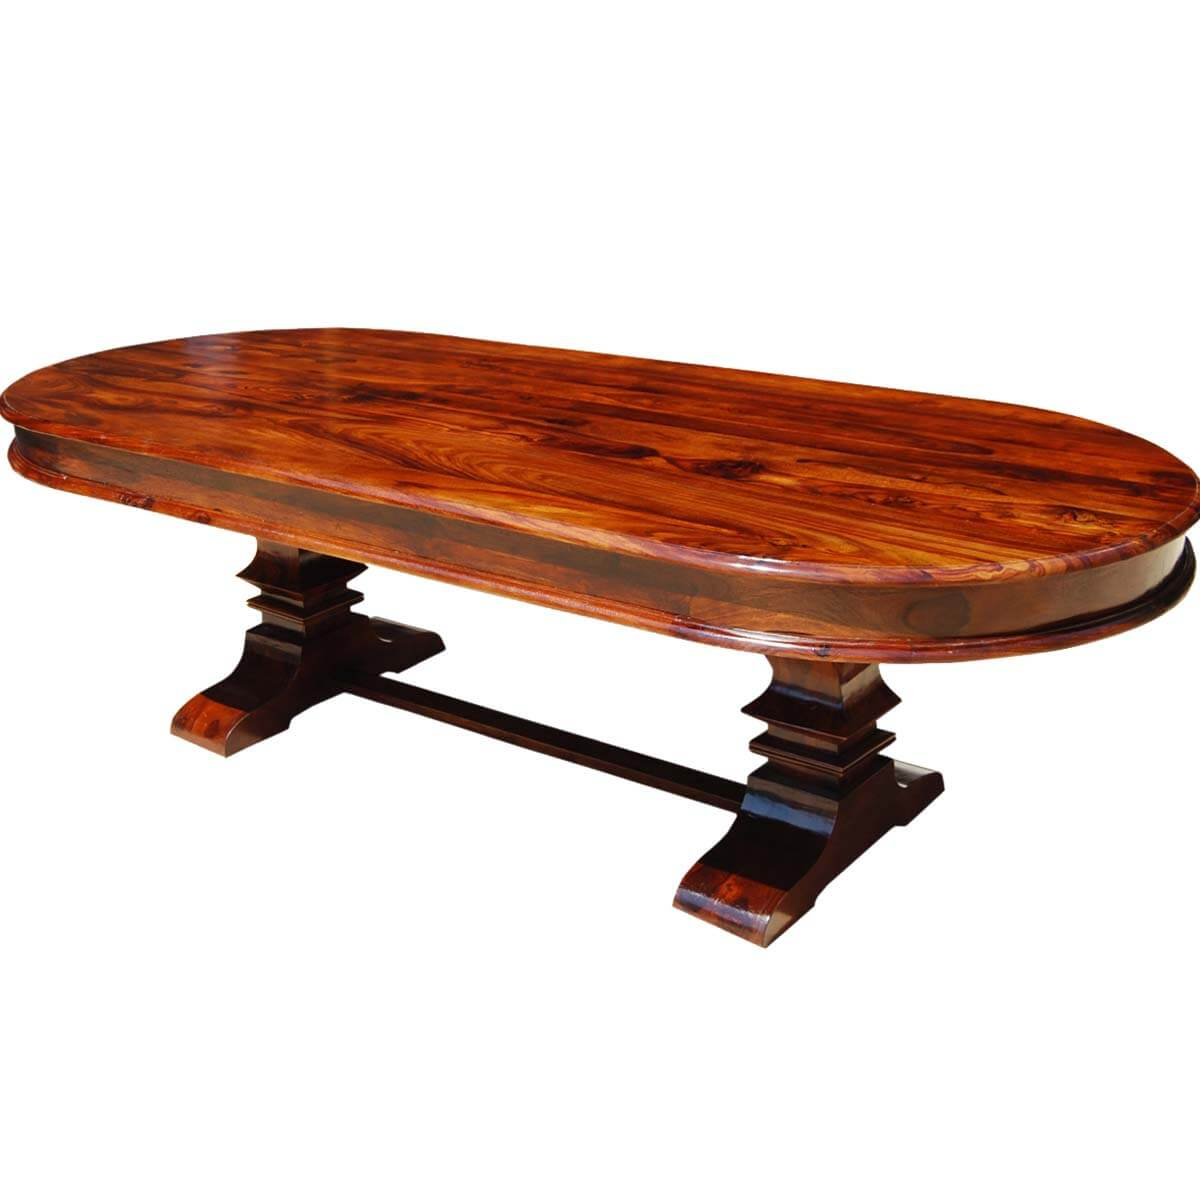 ... Tuscan Trestle Indian Rosewood 104u201d Oval Dining Table ...